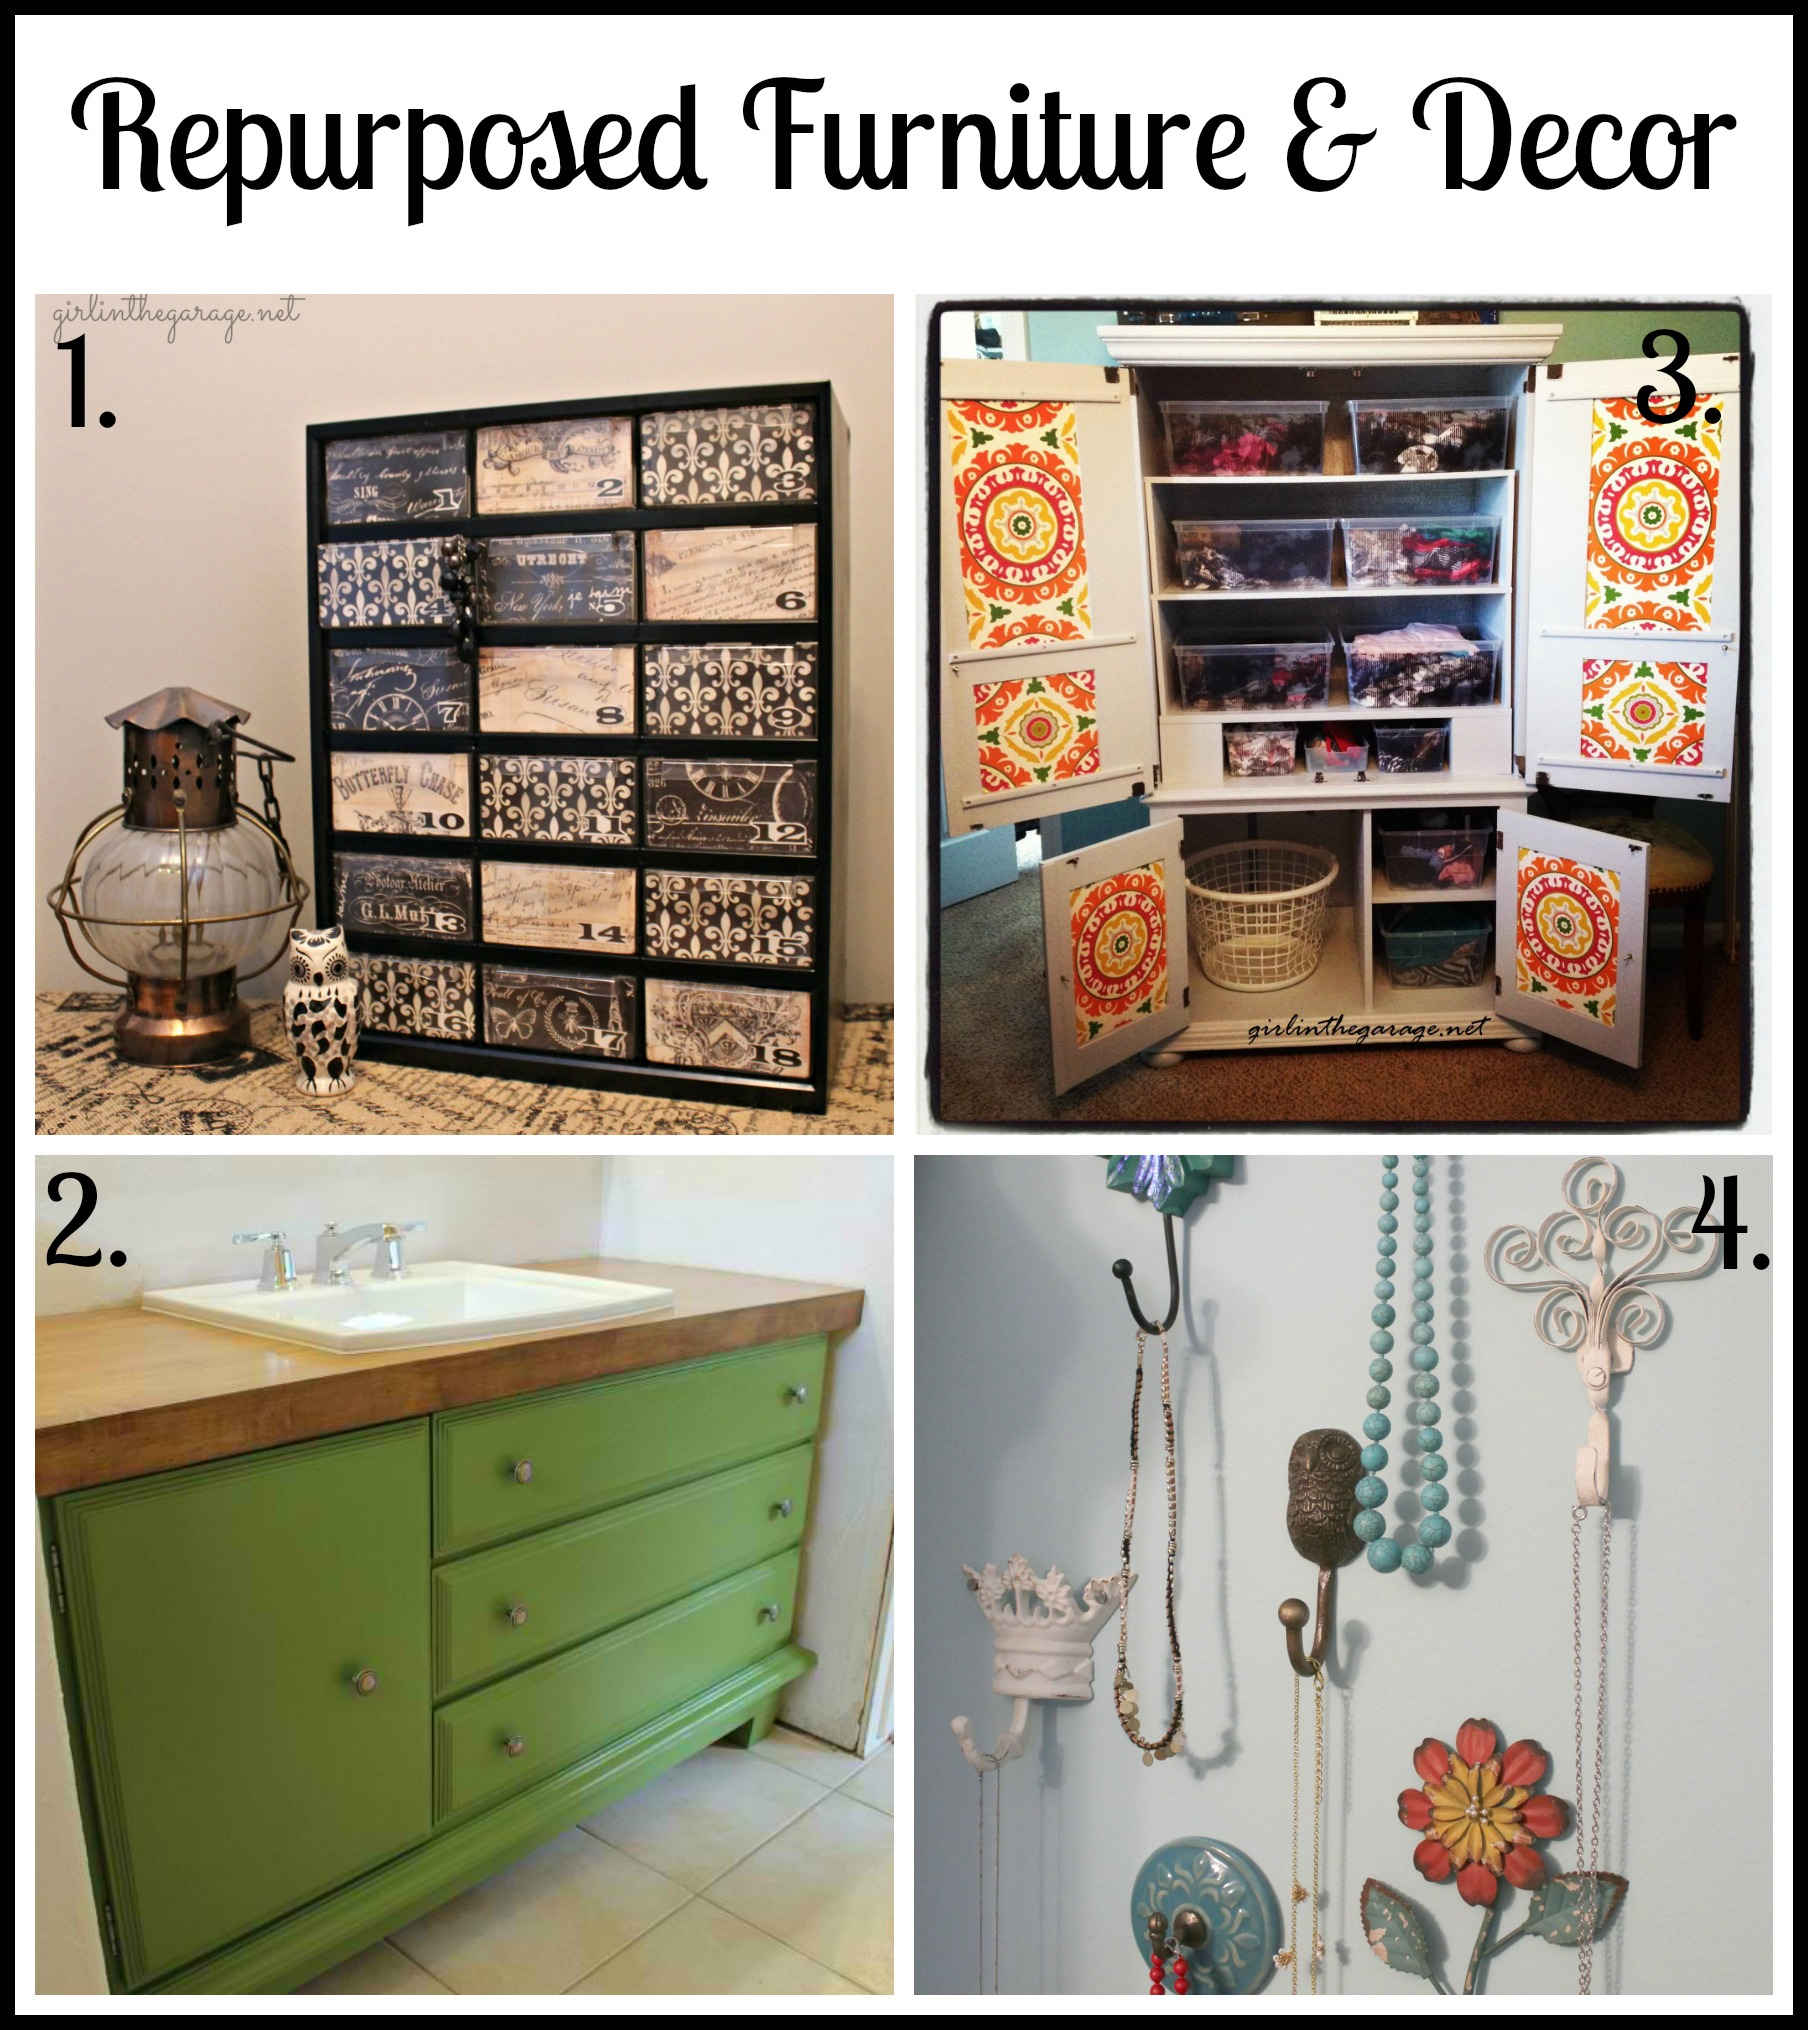 Give Items A Completely Different Purpose Than What They Were Originally  Intended For. Repurposed Furniture And Decor ...